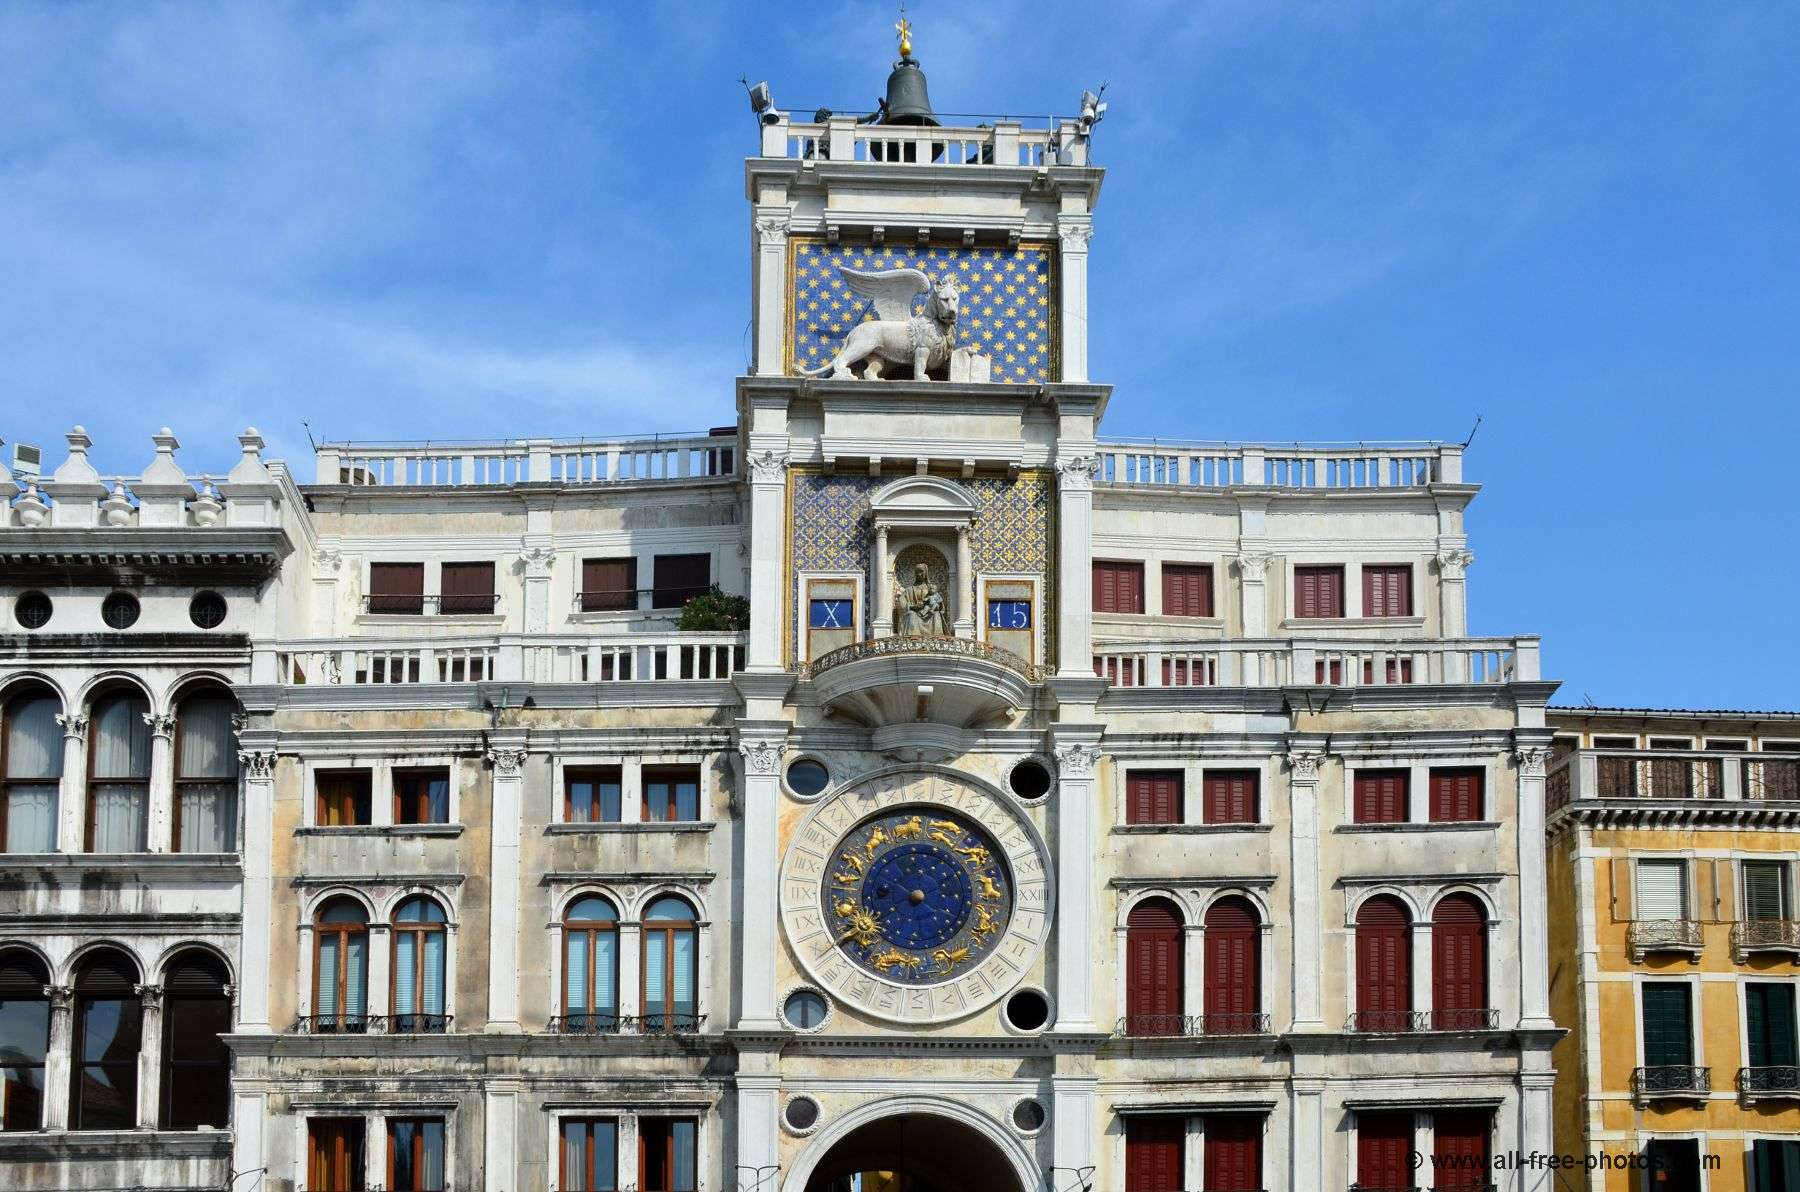 piaget-venice-watch-tower.jpg